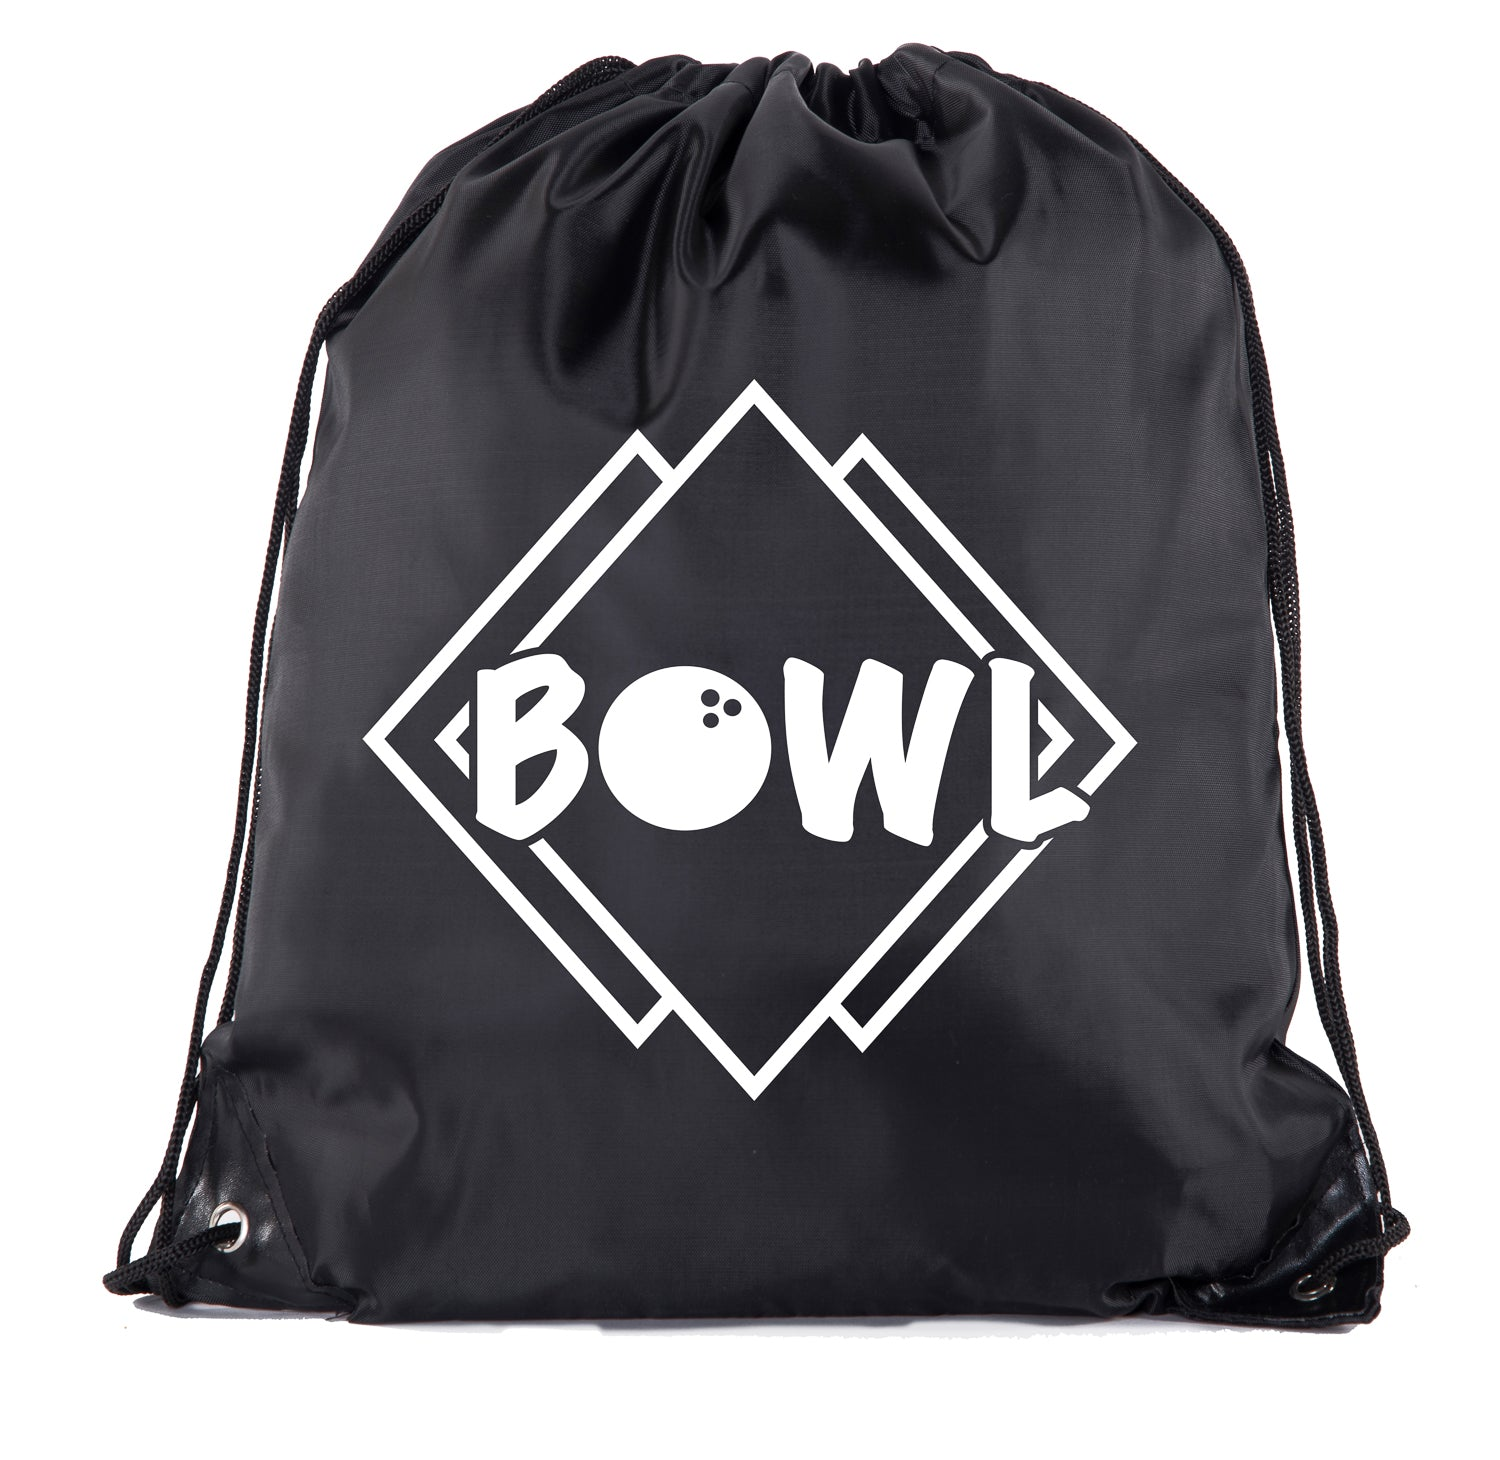 Accessory - Mato & Hash Drawstring Bowling Bag | Bowling Cinch Bags For Leagues And Parties! - Retro